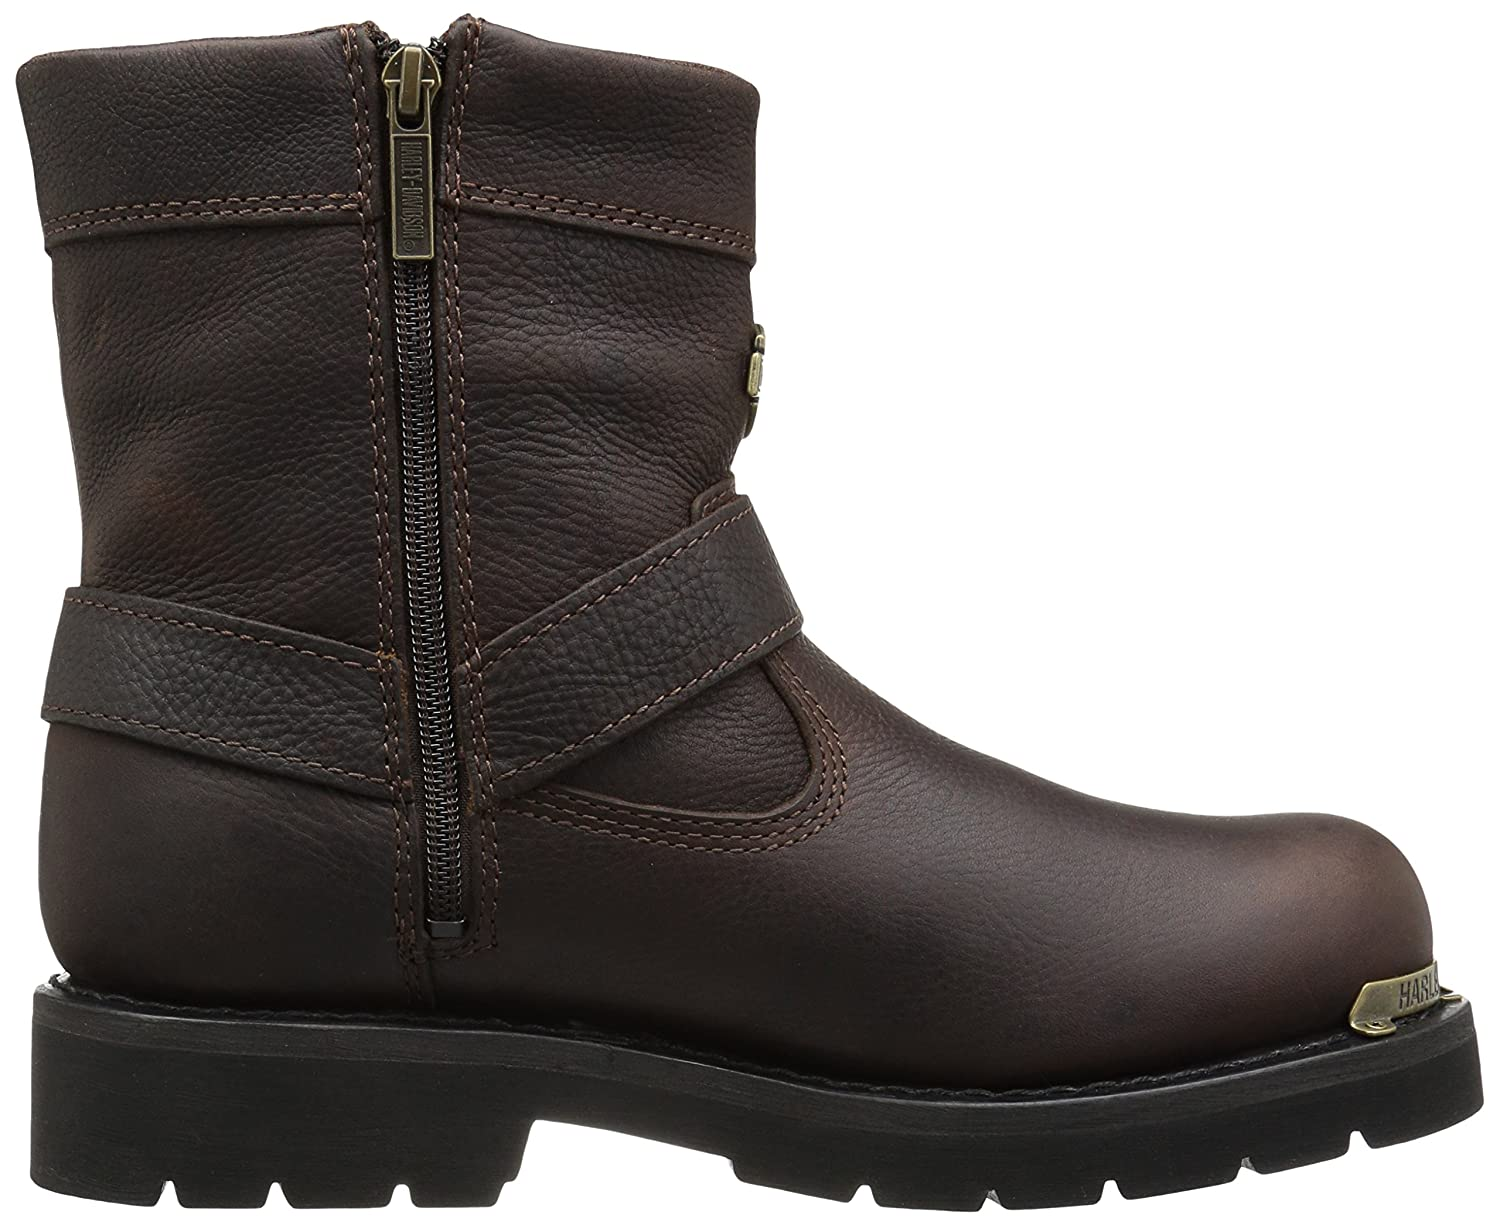 Harley-Davidson Mens Cromwell Motorcycle Boot